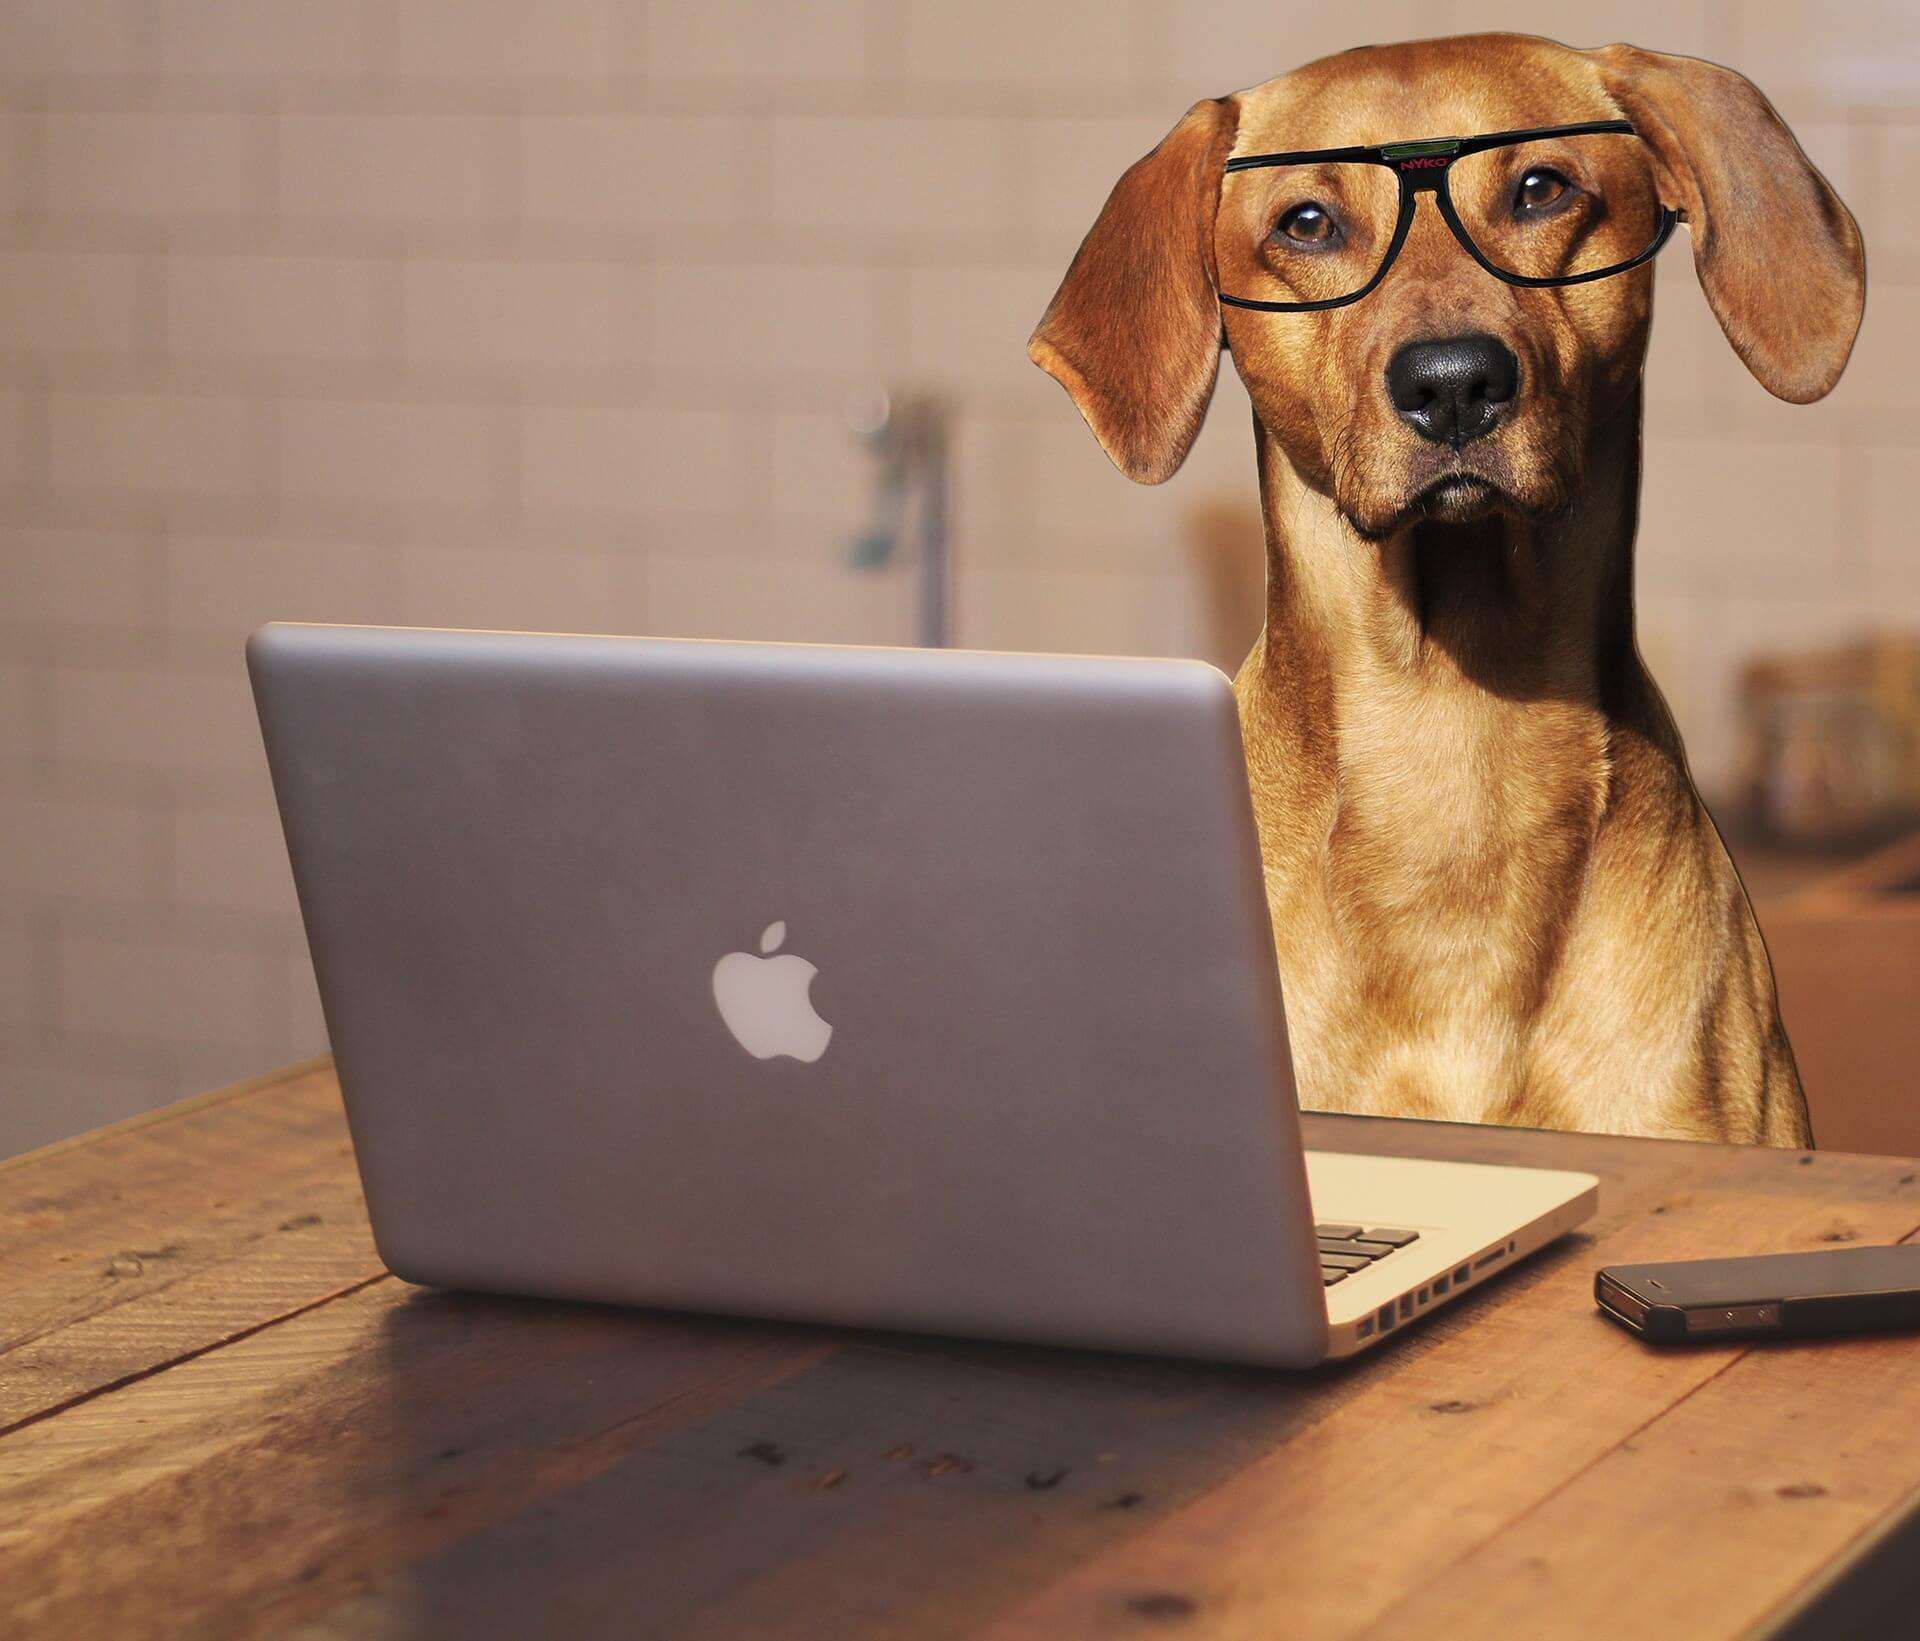 dog using one of three types of searches